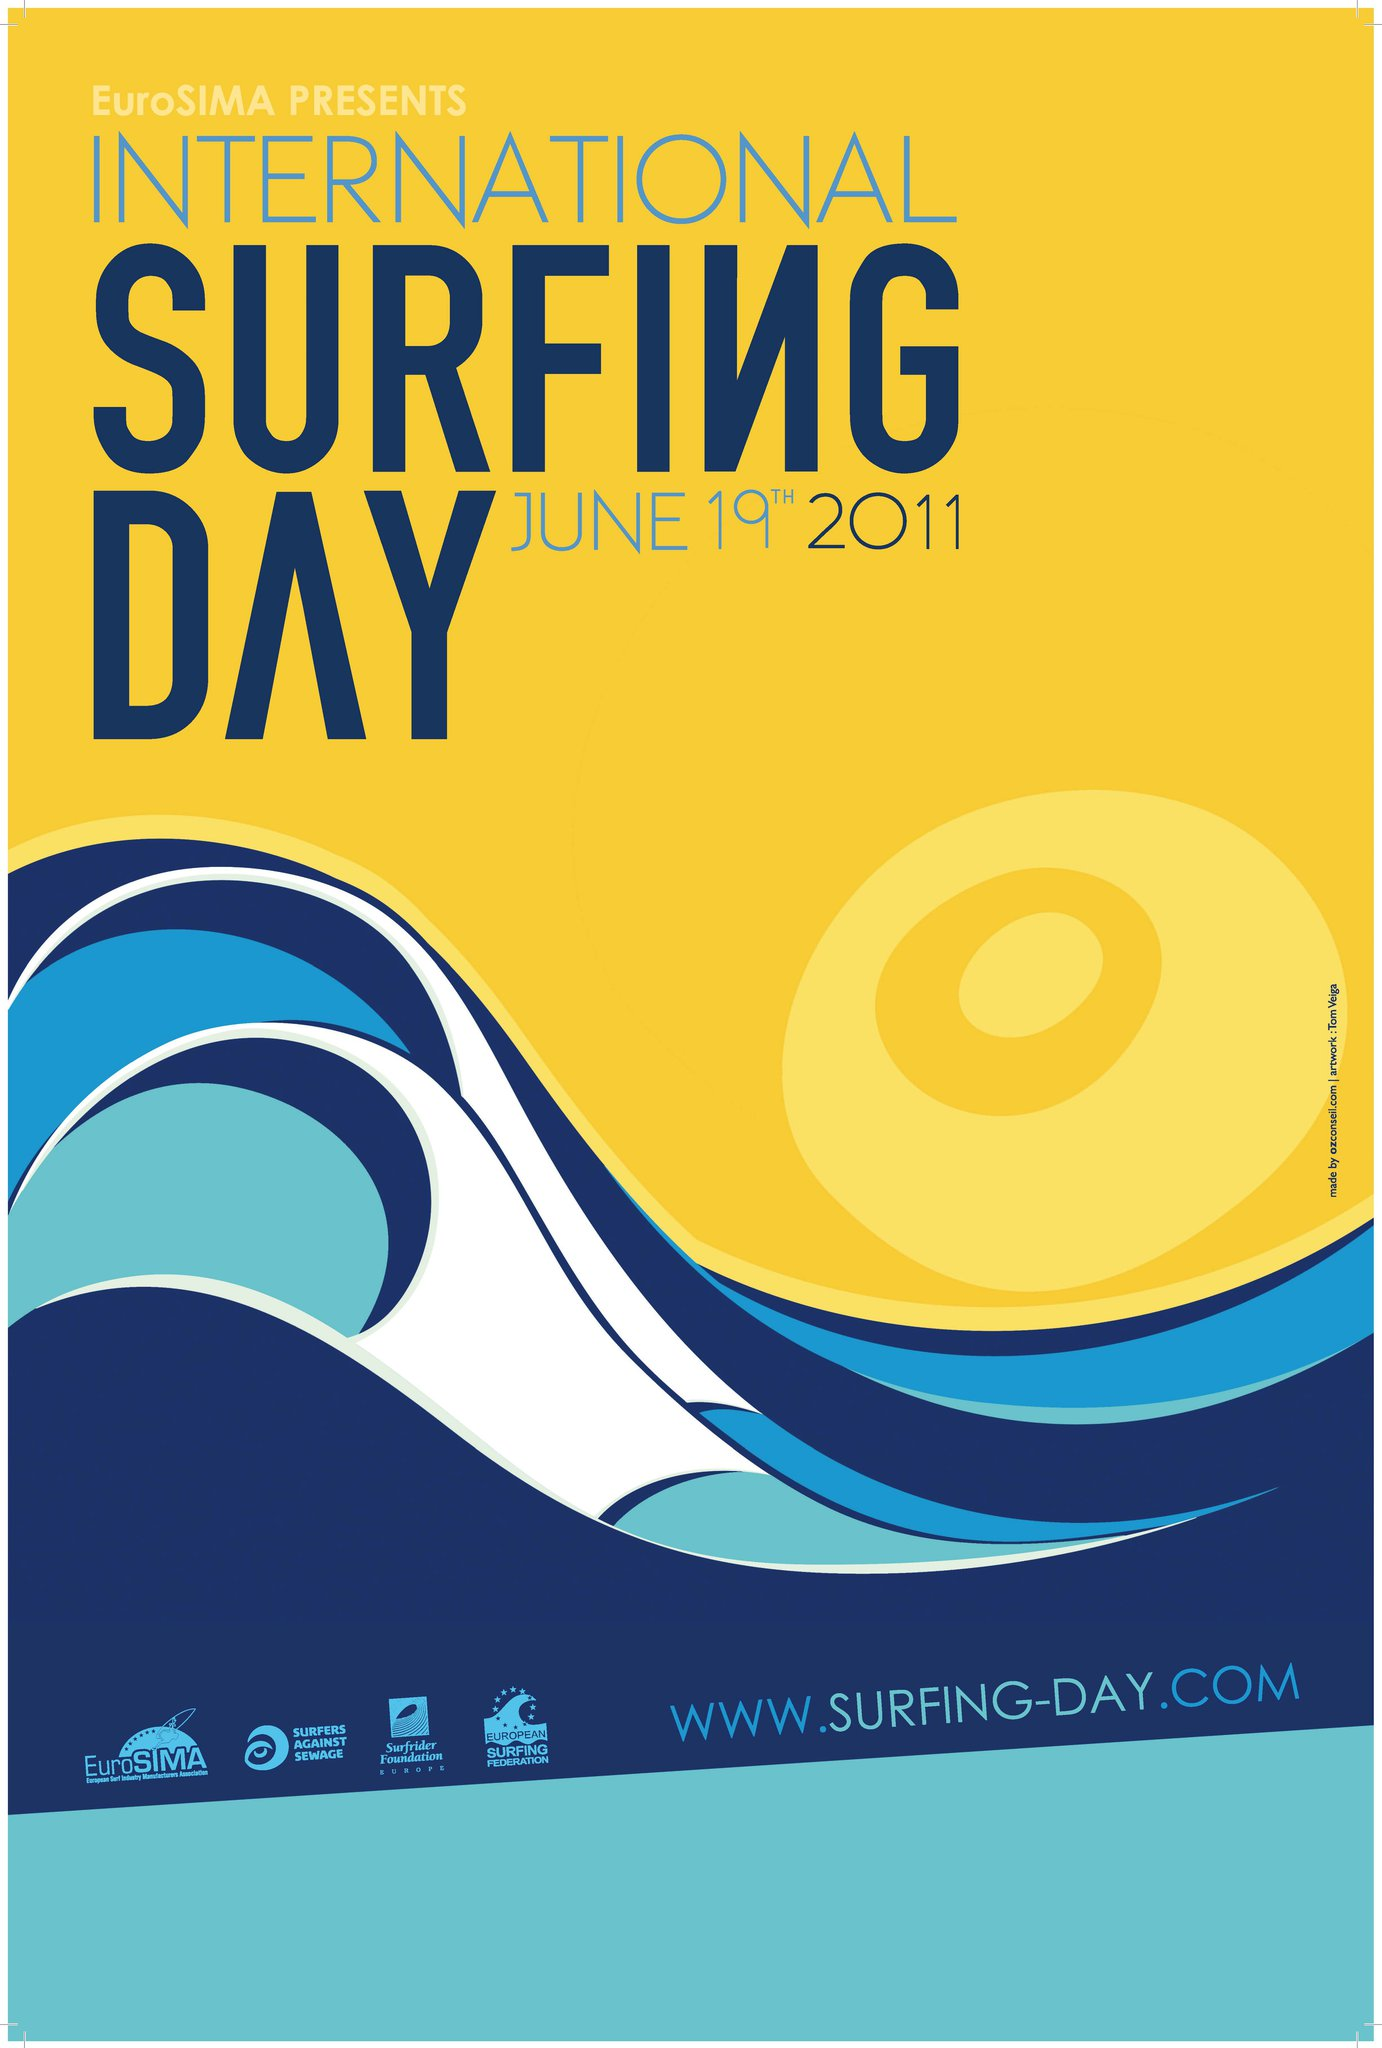 Celebrating International Surfing Day on June 18